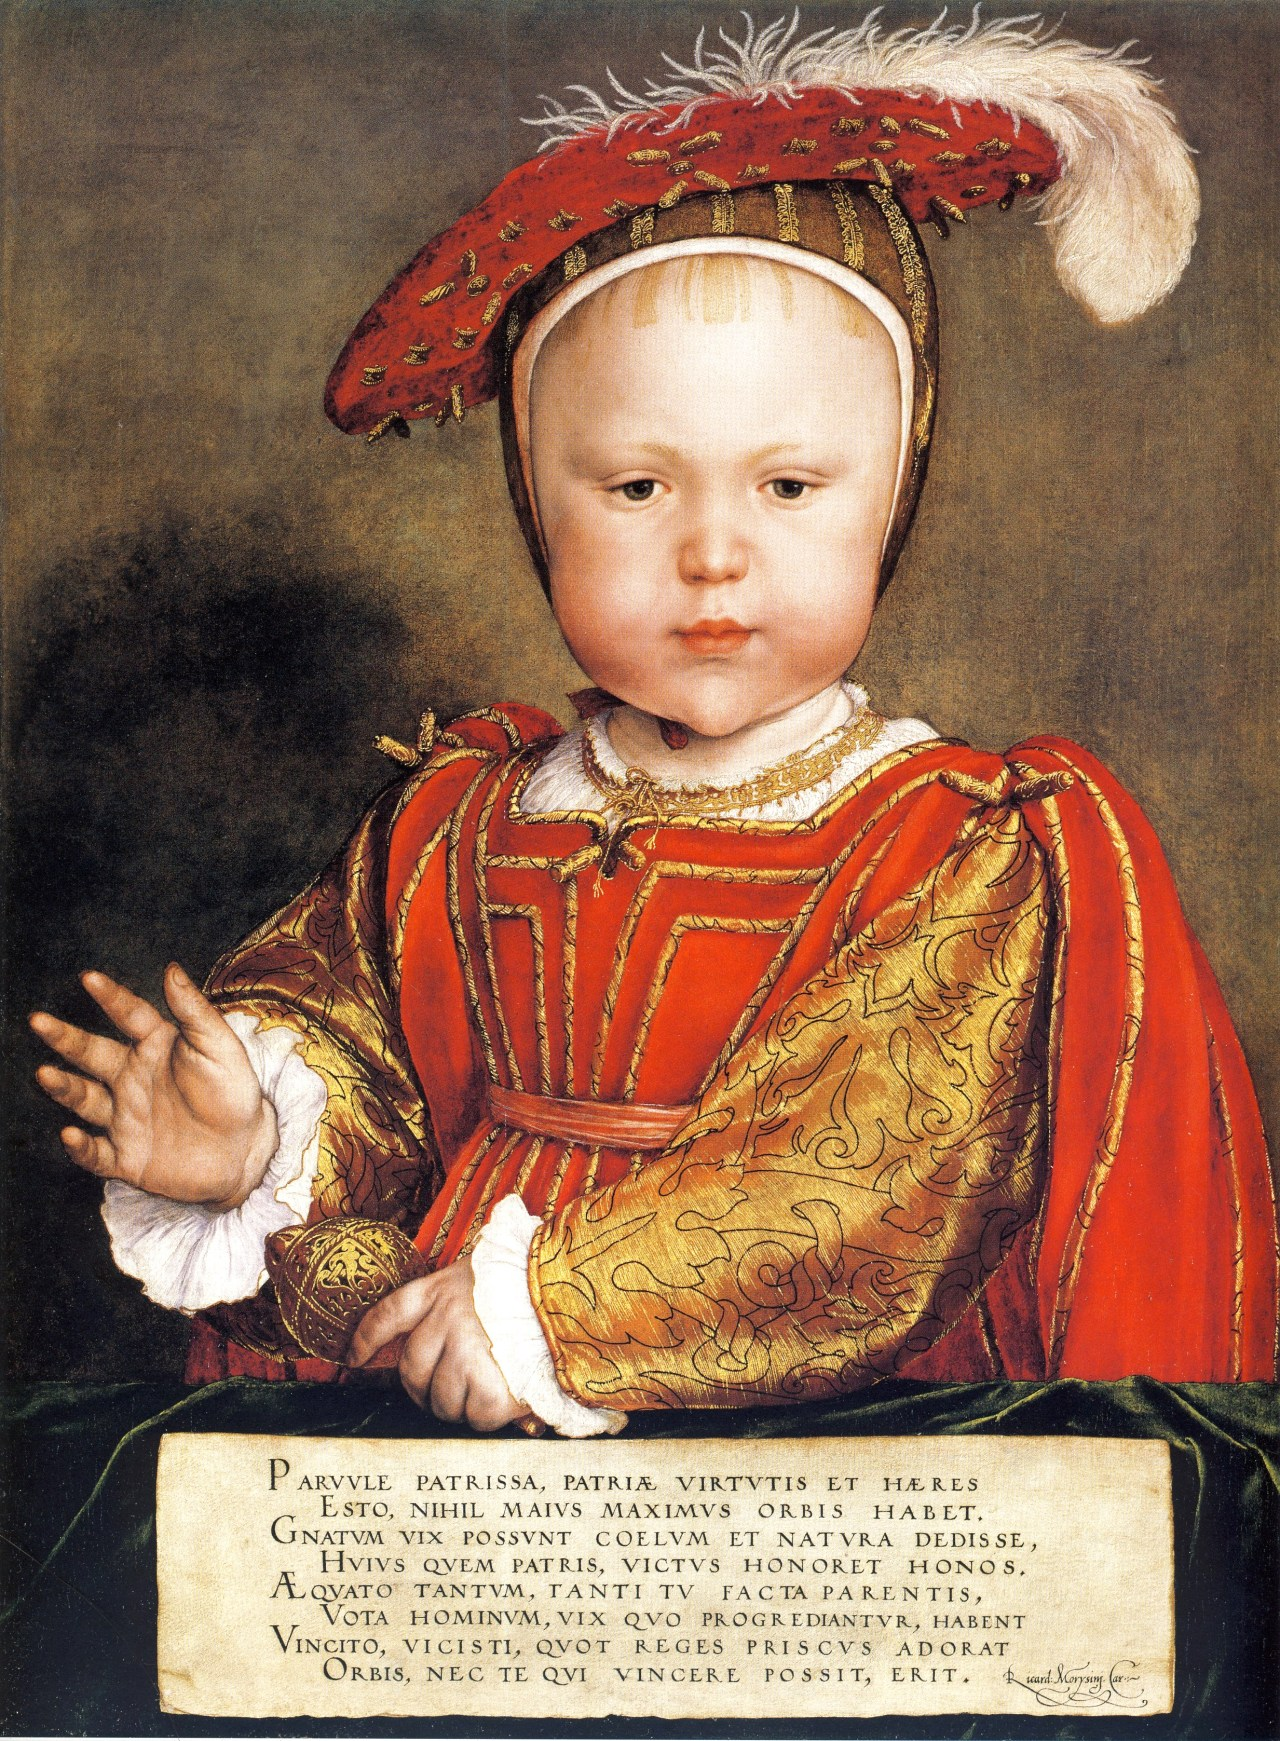 Prince Edward, son of Henry VIII